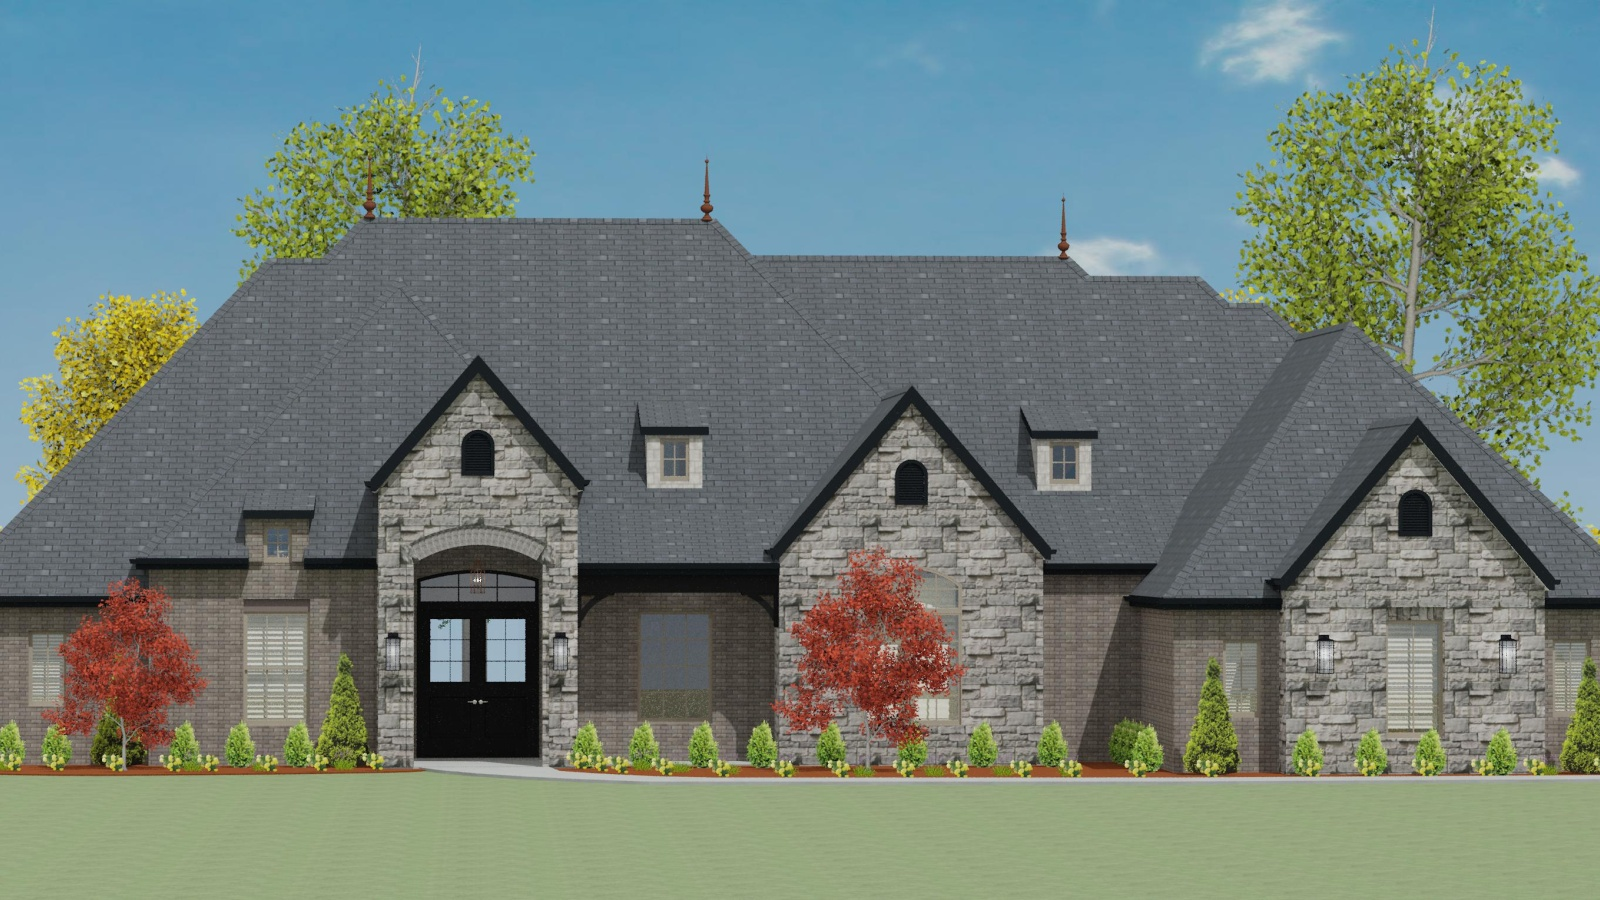 4 Bedrooms Bedrooms, ,4 BathroomsBathrooms,Custom Home,Home Plans,1071